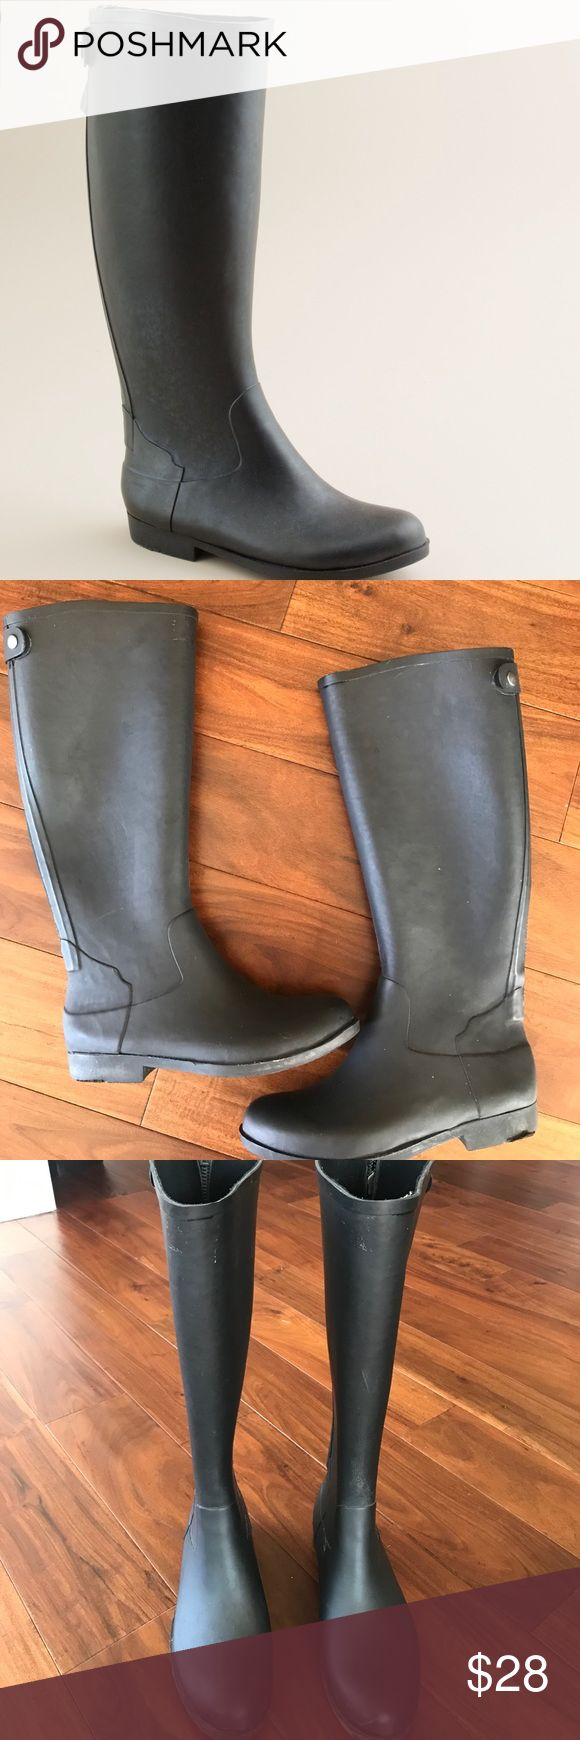 J Crew Weatherby Boots Size 8 Back zip black rain boots. Some wear but still great condition. J. Crew Shoes Winter & Rain Boots